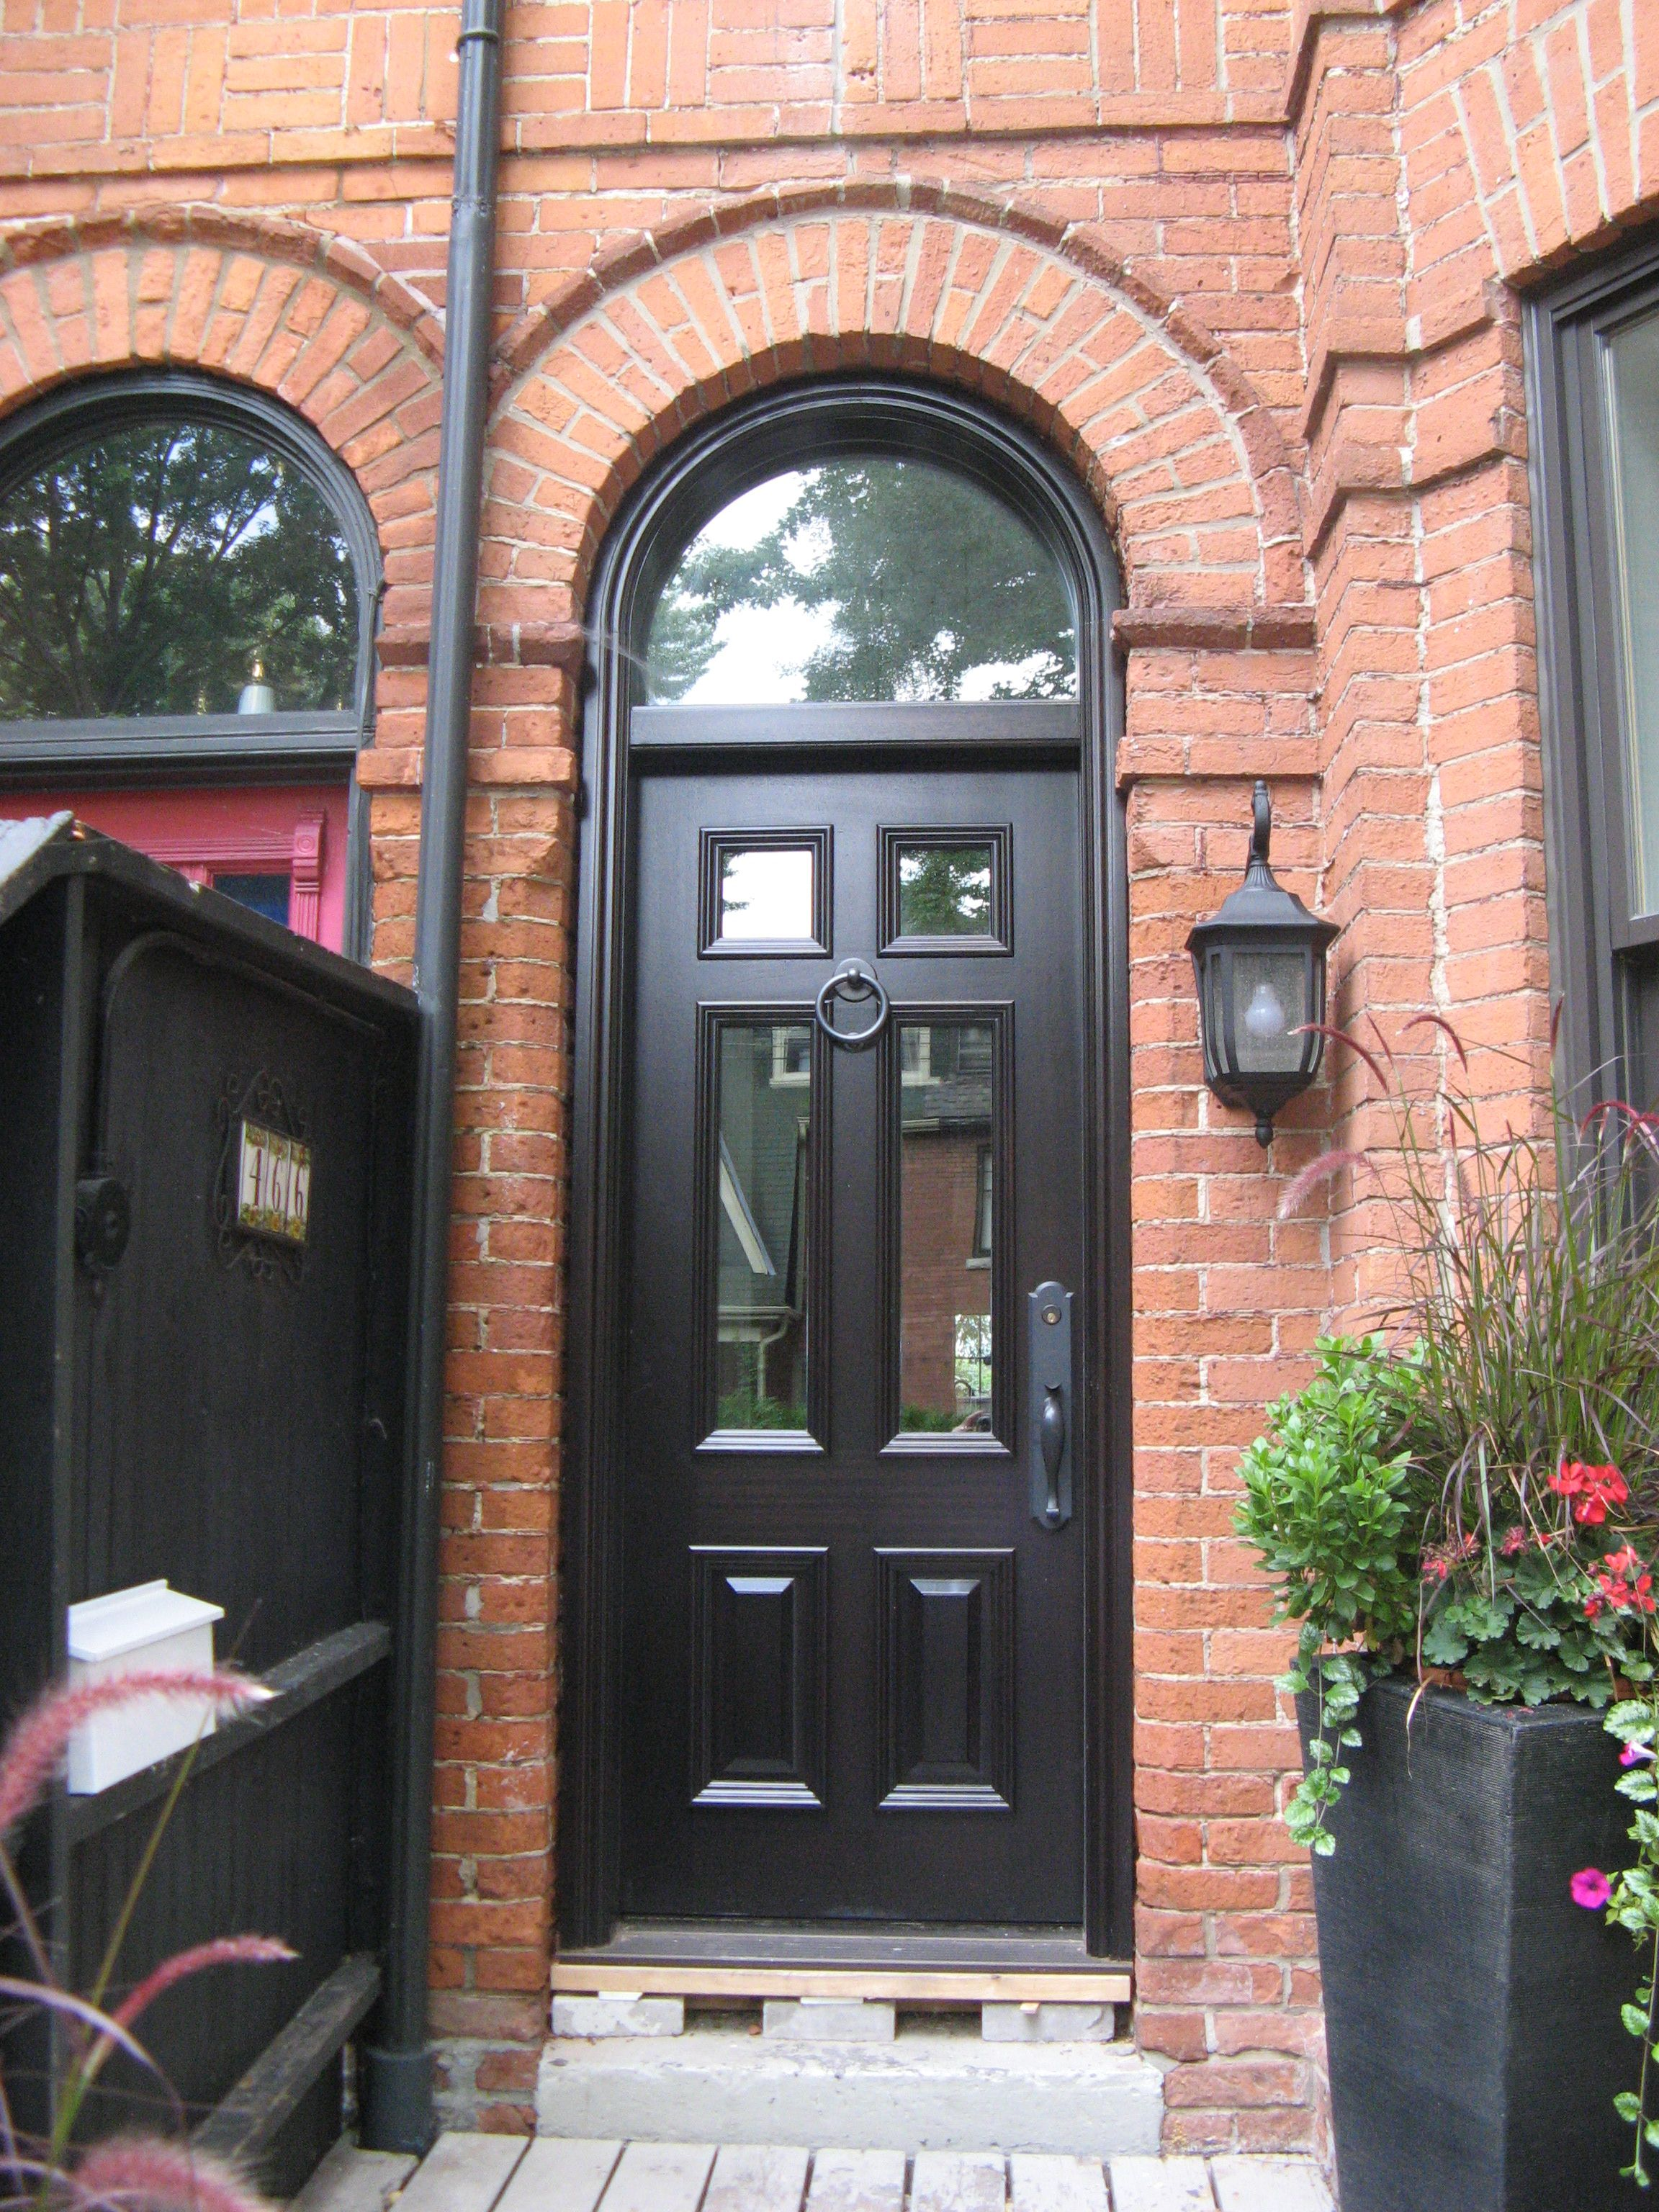 This Charming Urban Home Features A 6 Panel Amberwood Mahogany #door, With  4 Glass Panels And A Matching Round Top Transom.